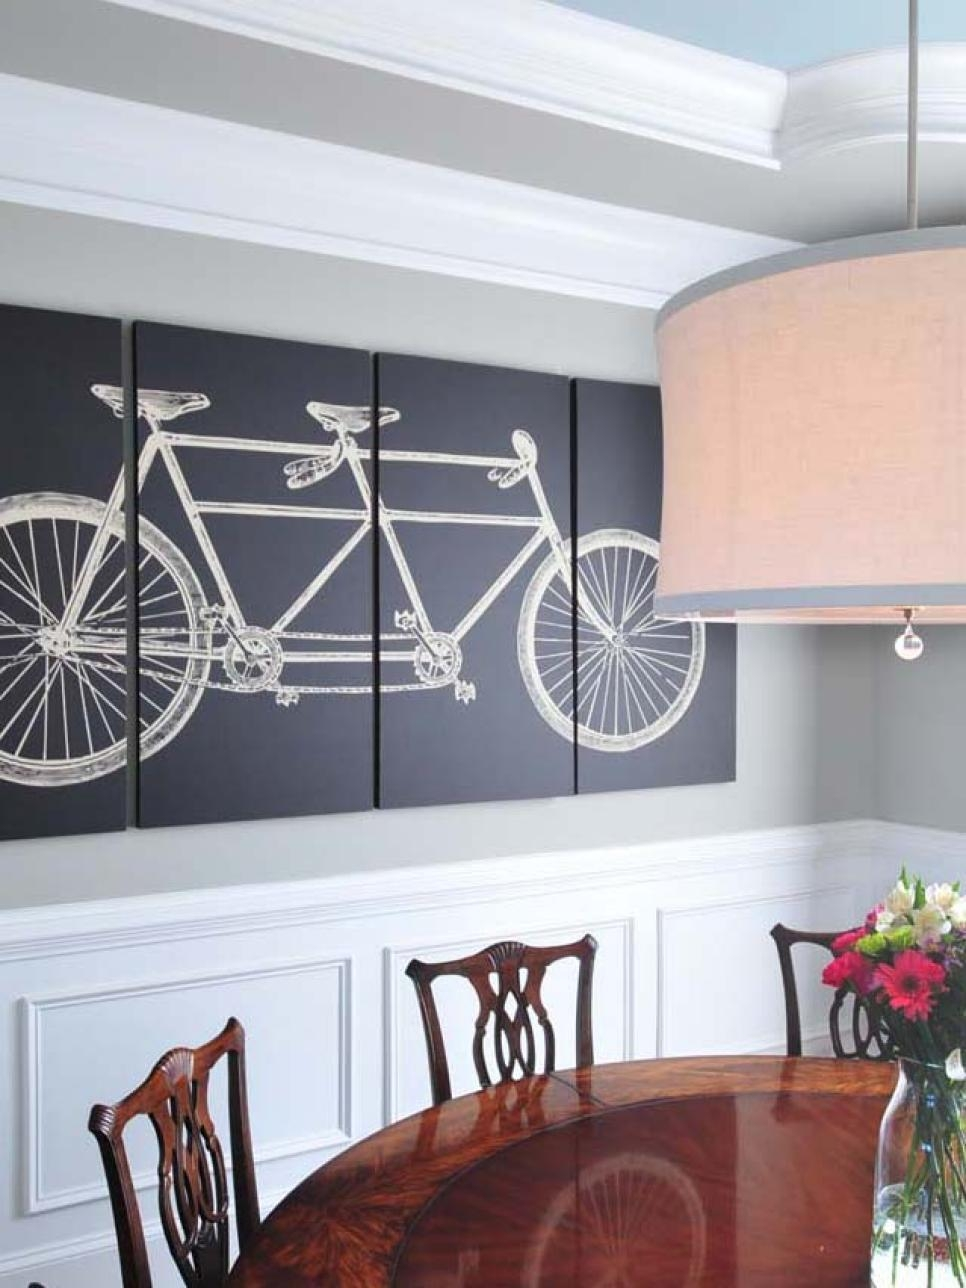 15 Dining Room Decorating Ideas | Hgtv Intended For Wall Art For Dining Room (View 10 of 20)